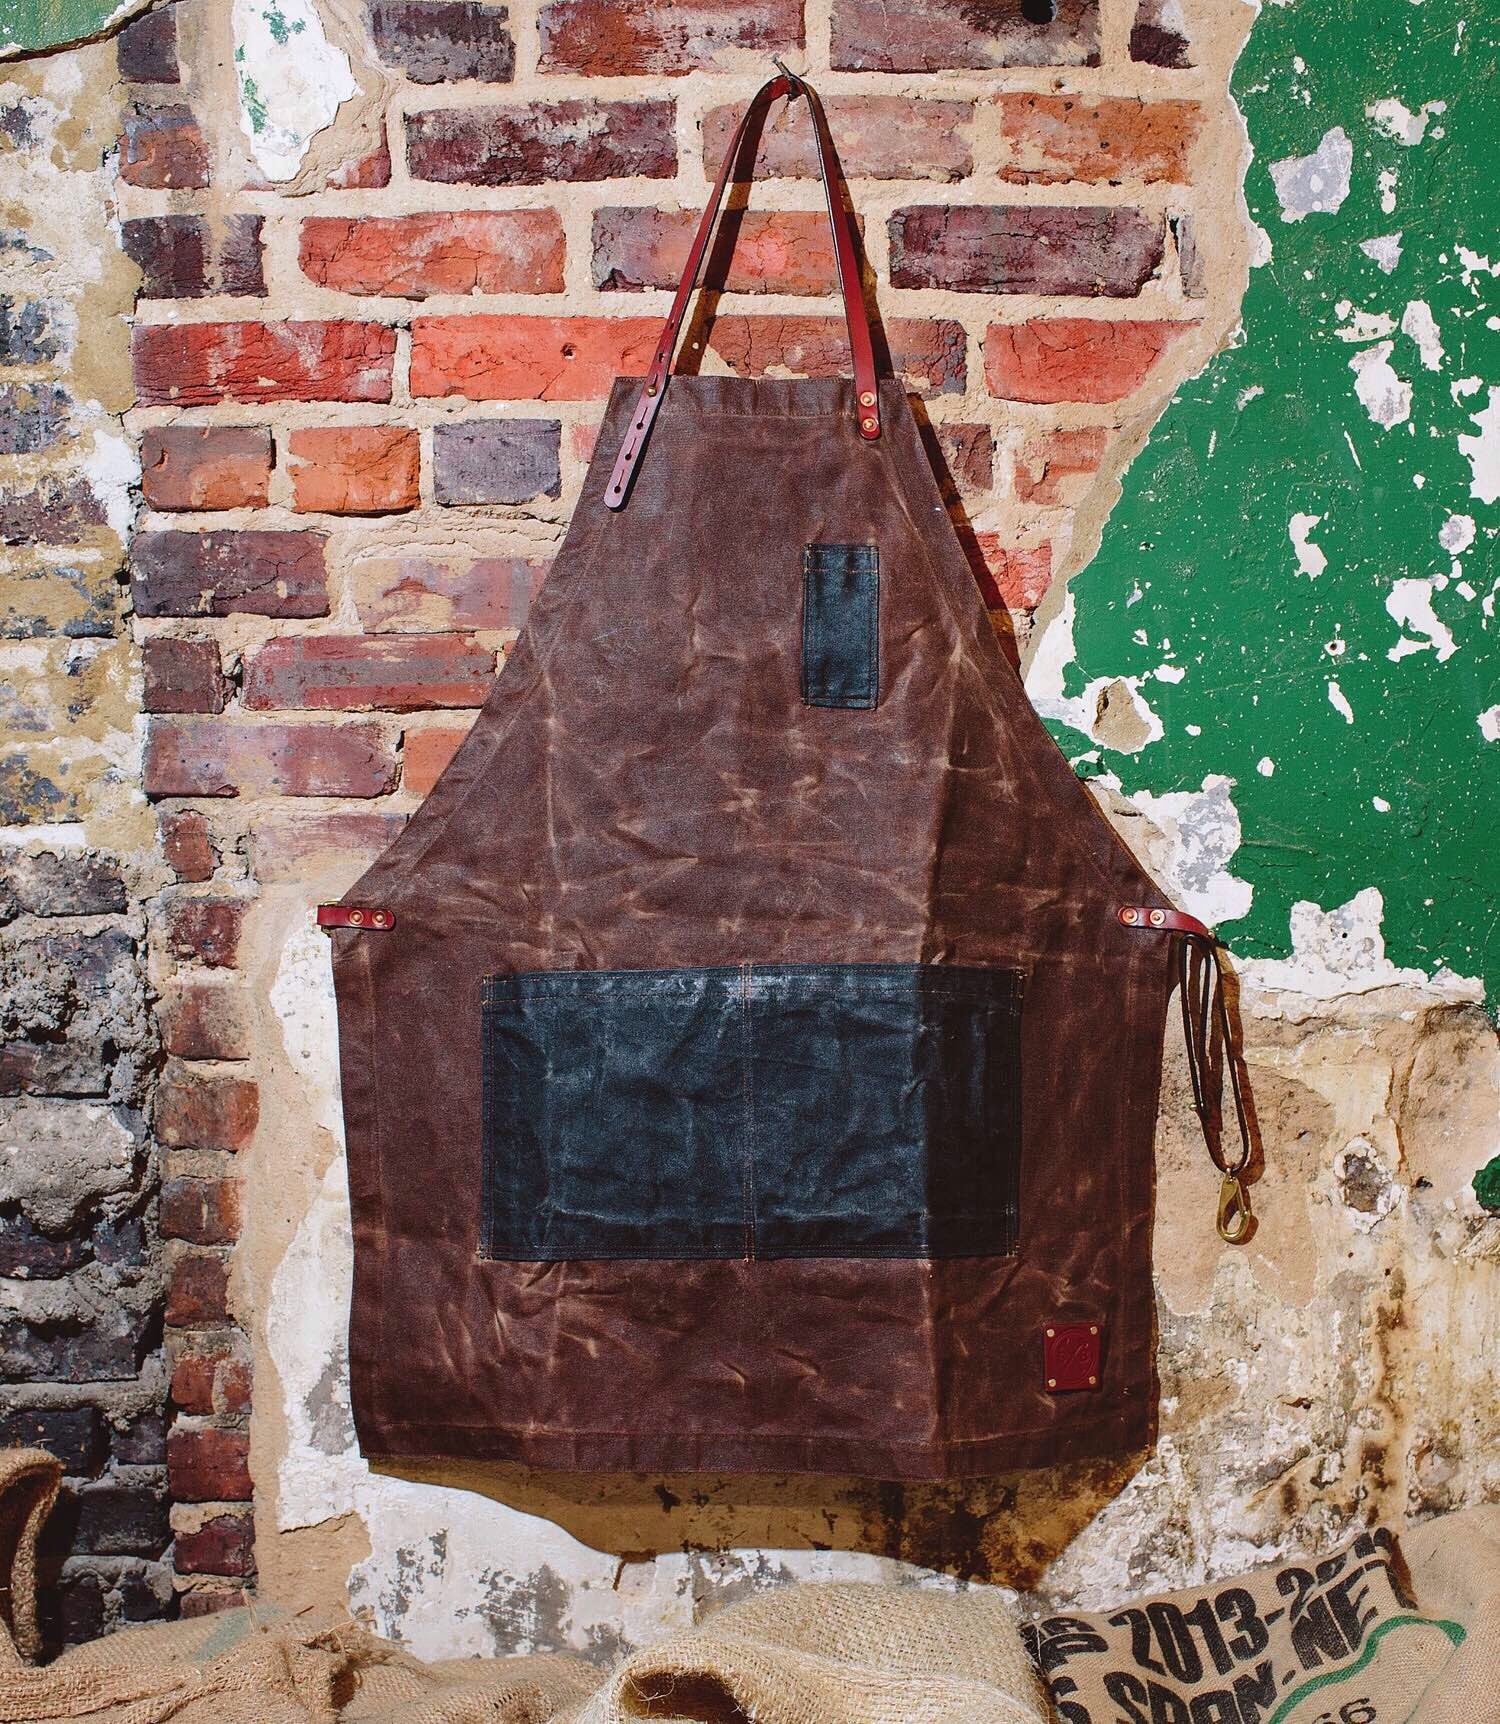 The Charles apron by Sturdy Brothers. ($150)